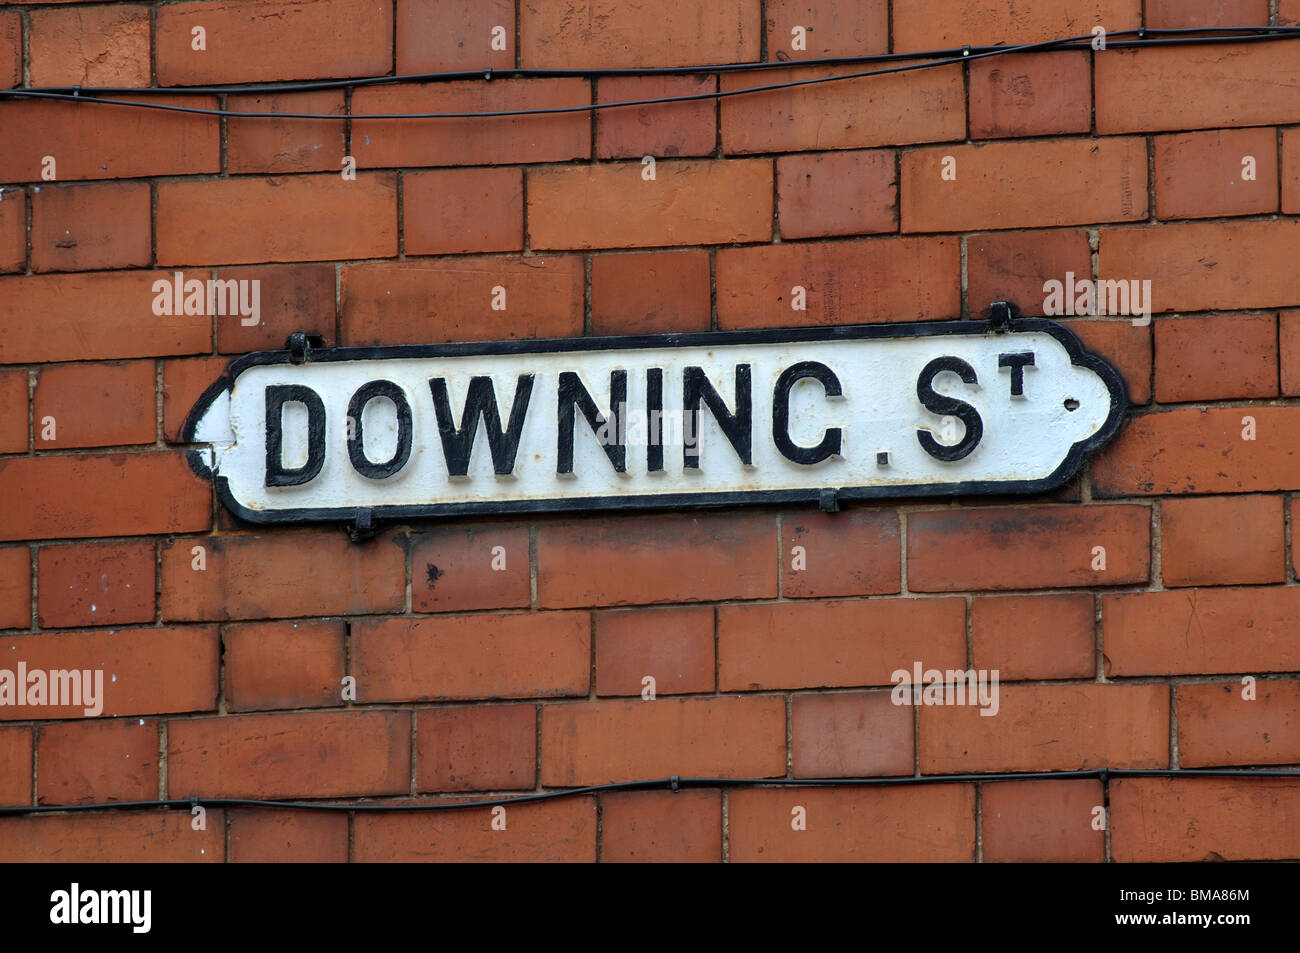 Downing Street sign Sutton-in-Ashfield, Nottinghamshire, England, UK - Stock Image